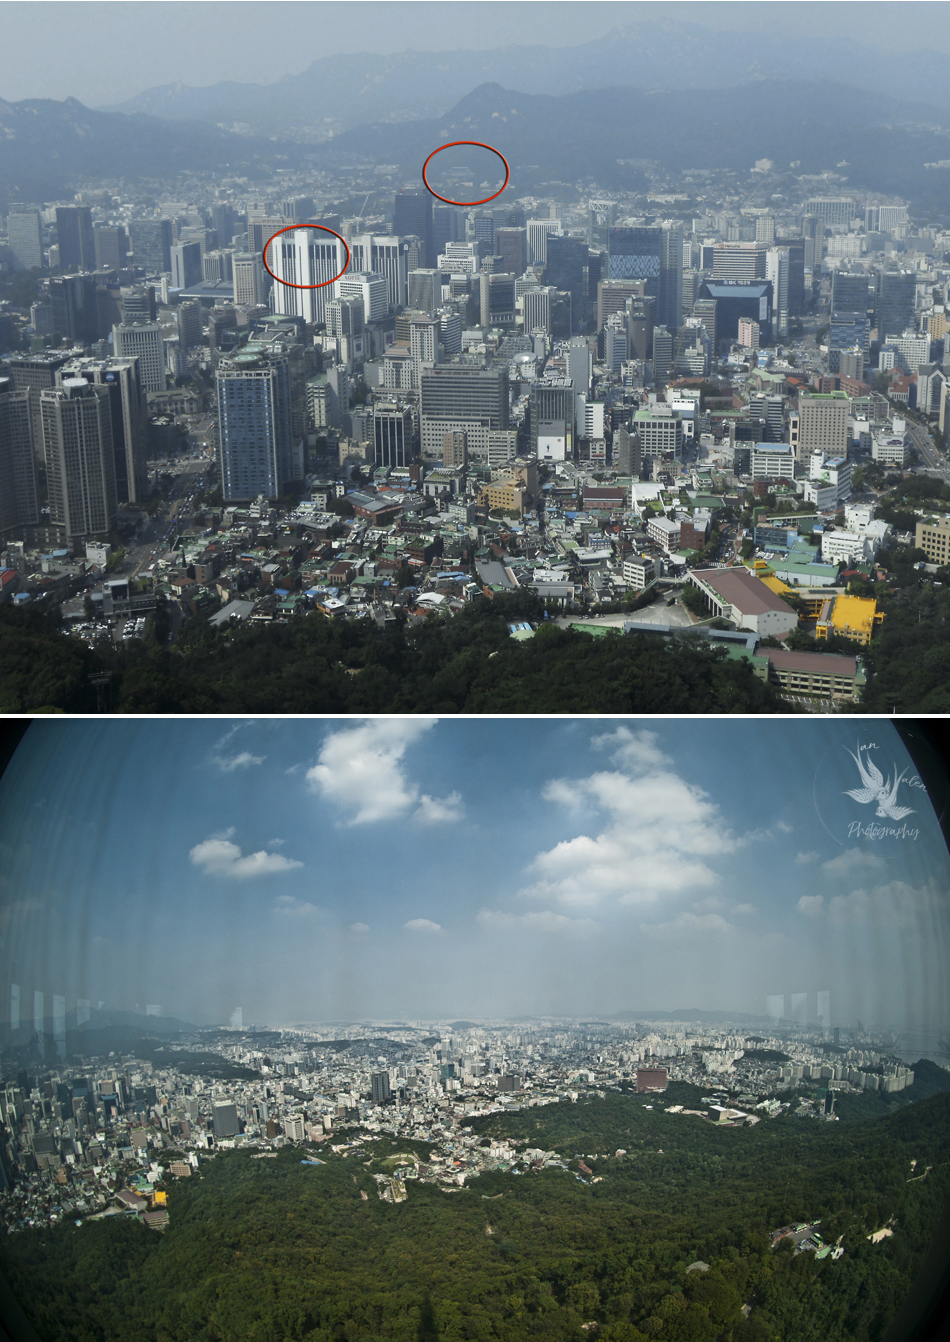 our hotel in one circle, the Palace in the other, and some of the sweeping, never-ending views of Seoul